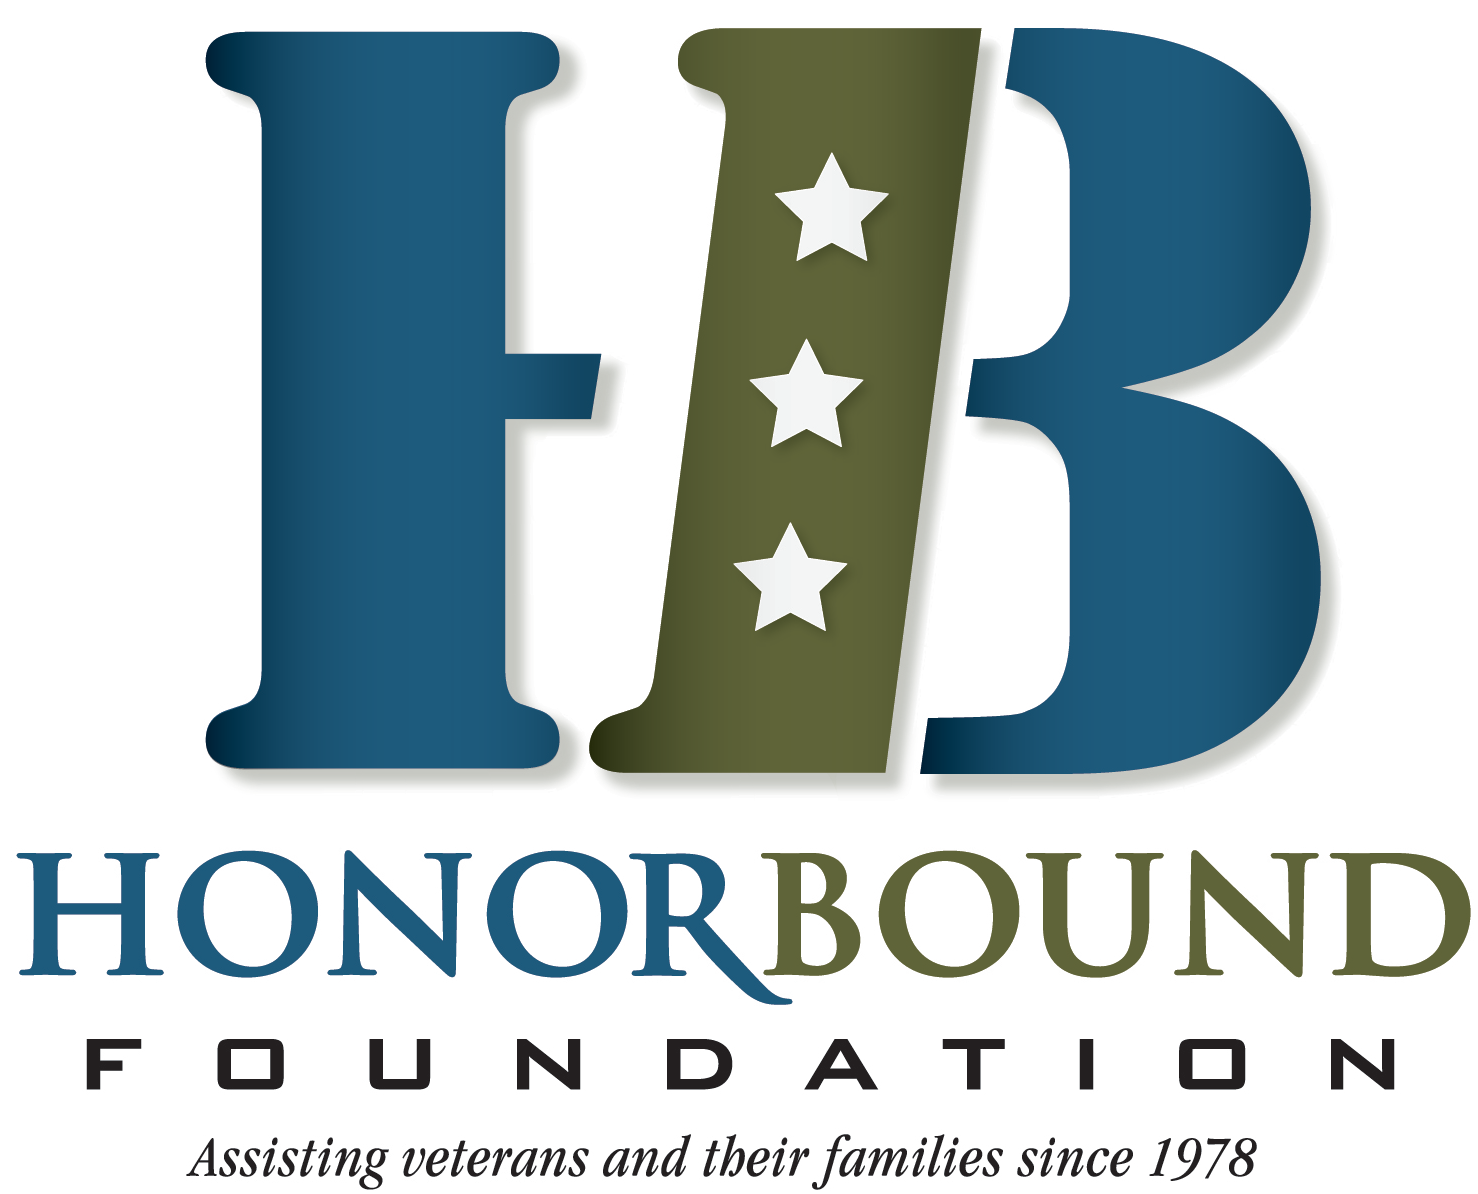 Georgia Car Donations - HonorBound Foundation - DonatecarUSA.com